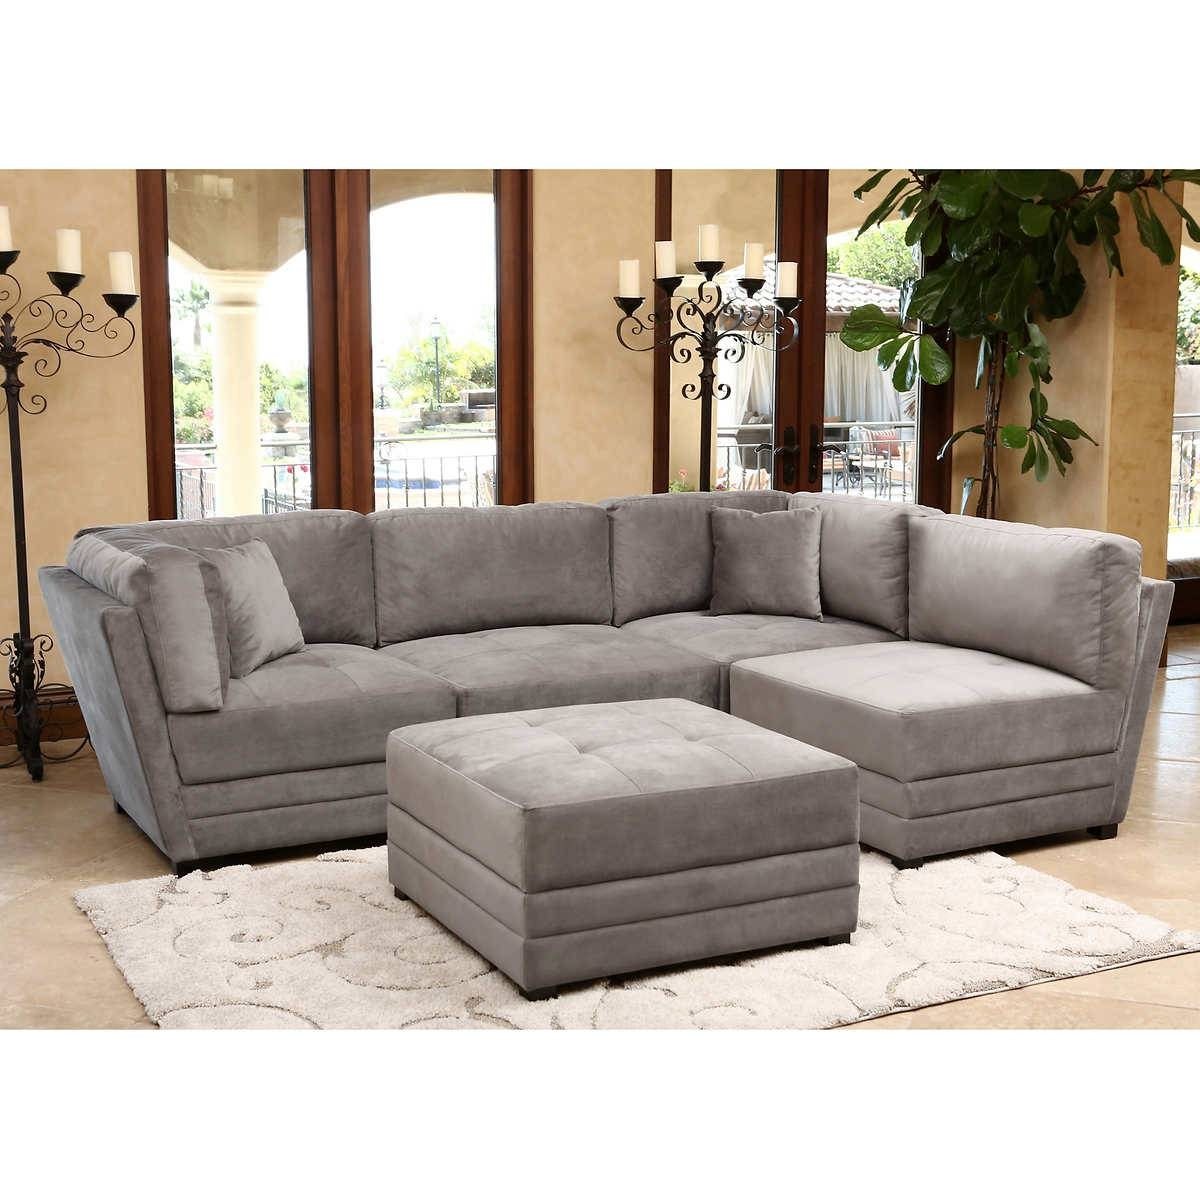 Furniture: Exciting Sectional Sofas Costco For Your Family Room regarding 10 Piece Sectional Sofa (Image 13 of 30)